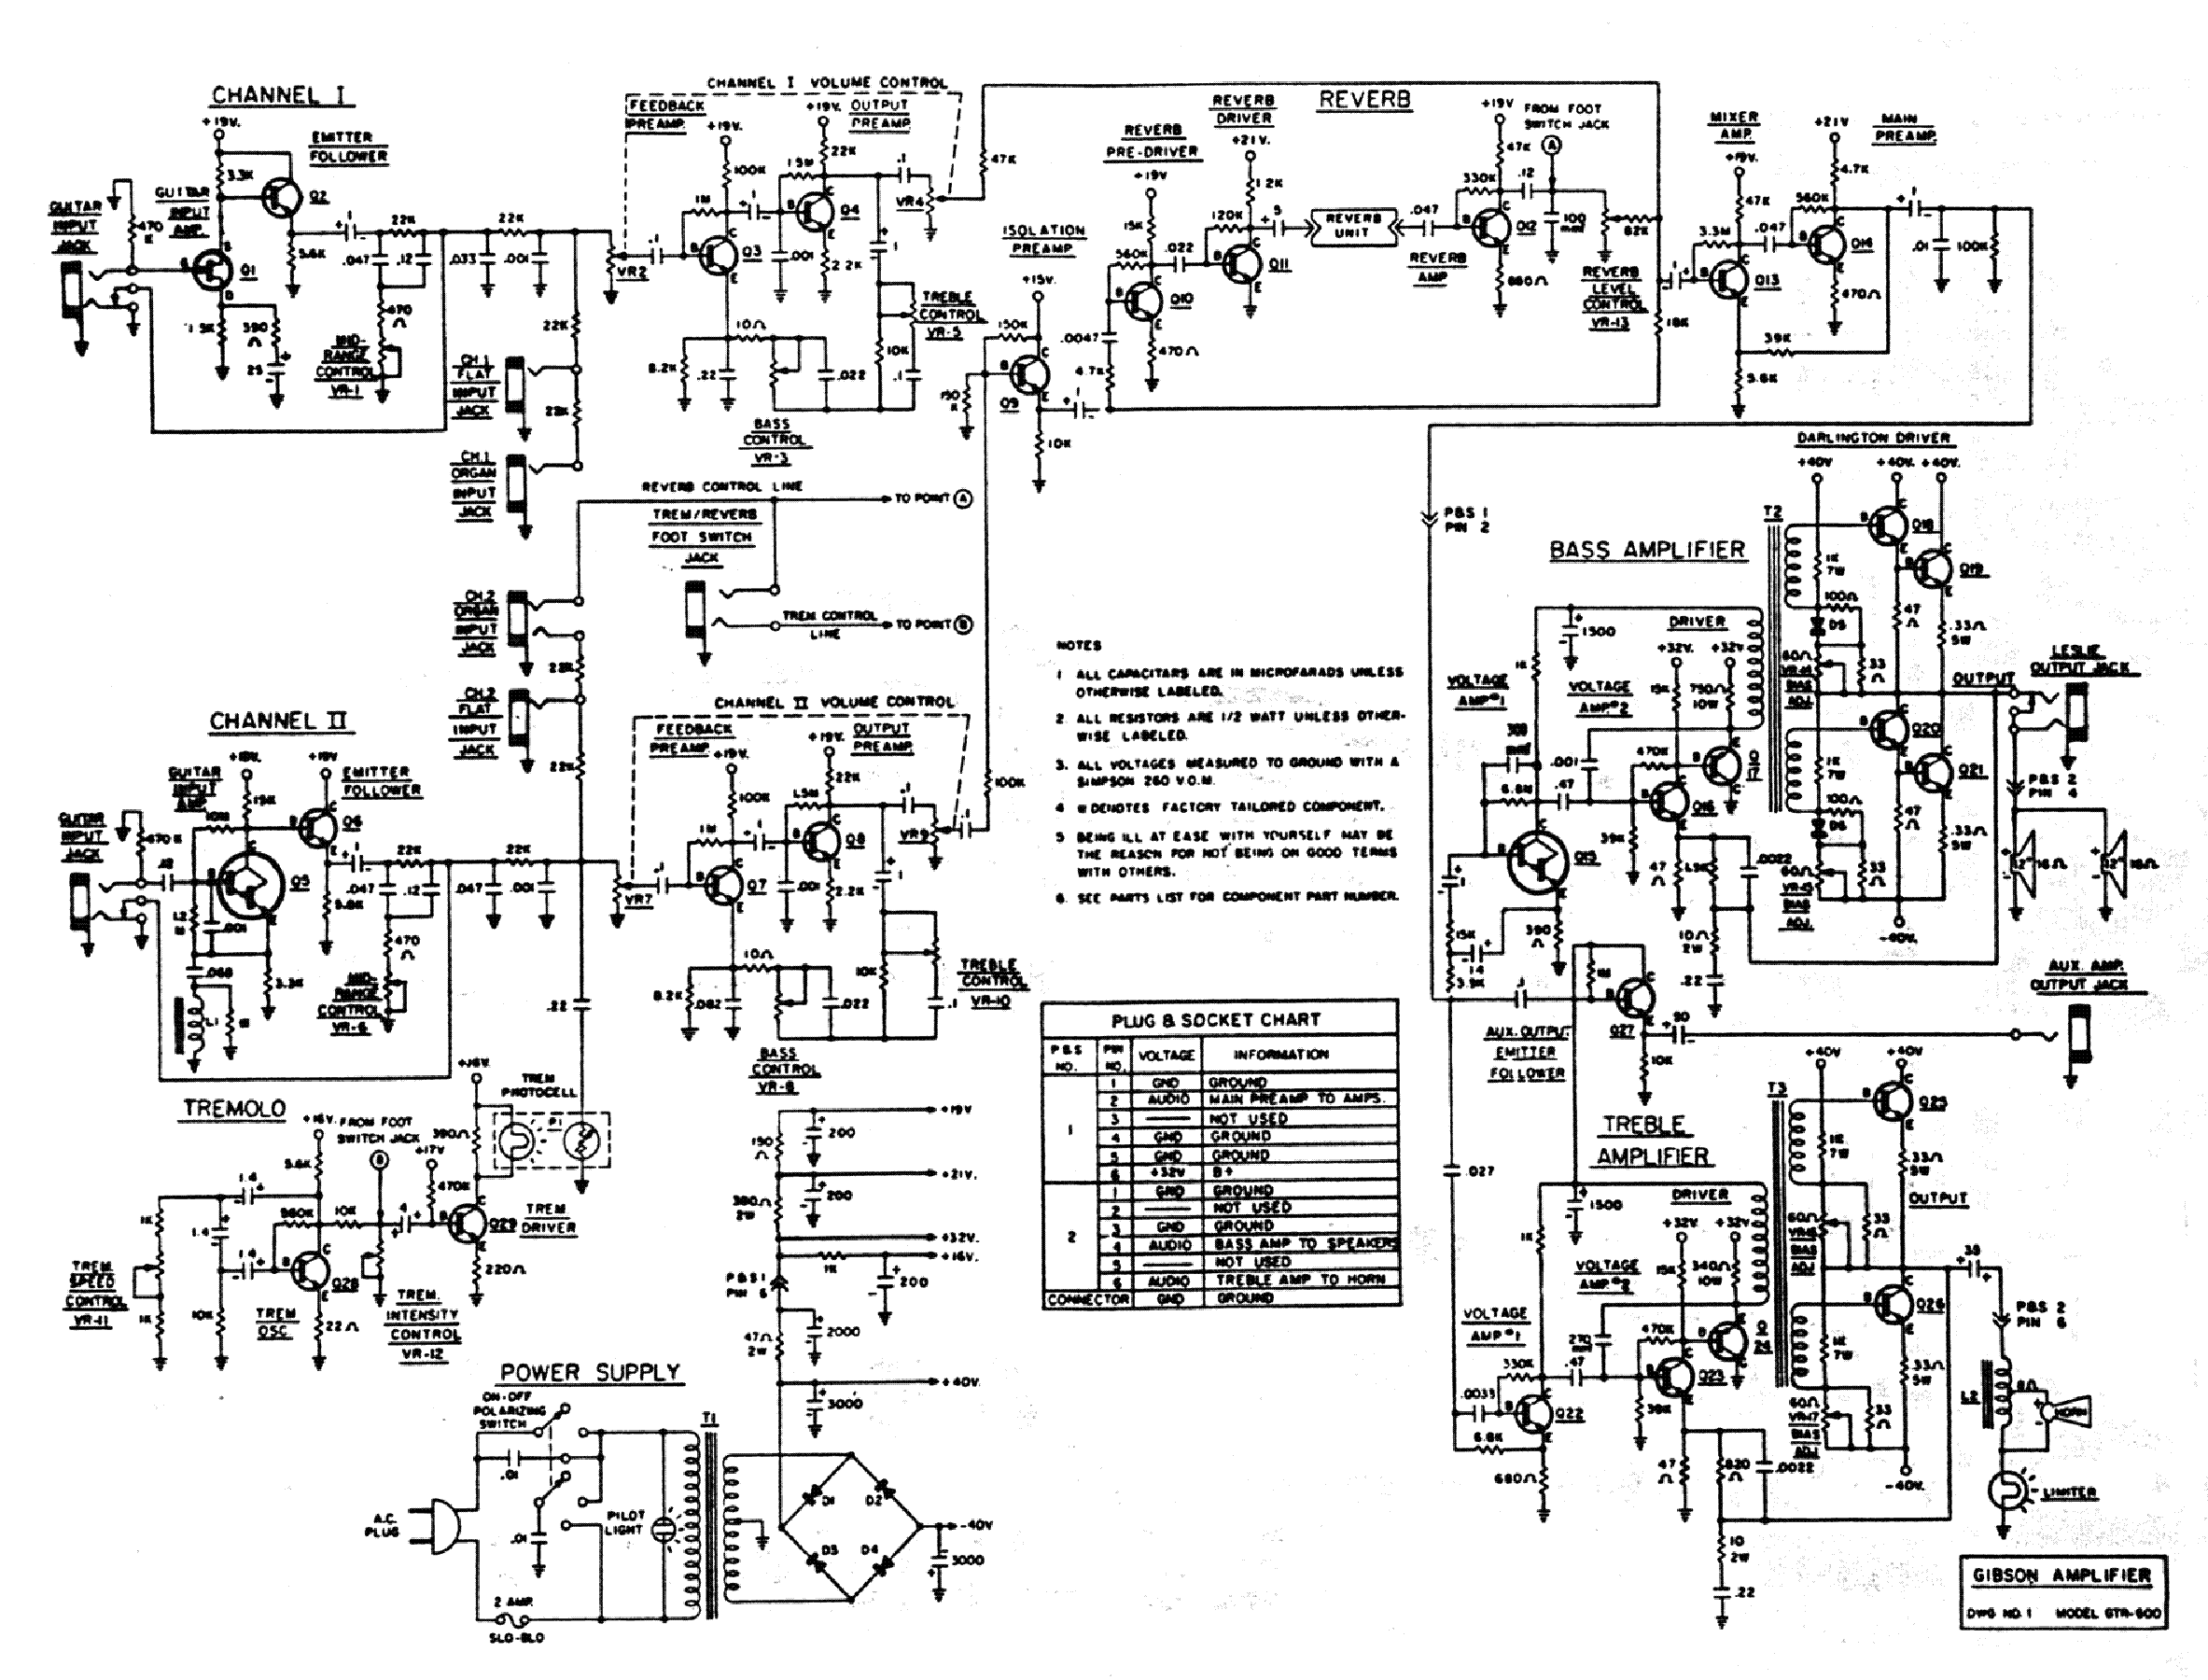 Gibson Gss 100 Wiring Diagram | Wiring Diagram on gibson humbucker wiring, gibson 3 way switch wiring, gibson les paul wiring, gibson headstock overlay, gibson pickup wiring one kill, gibson pickup schematic, gibson double neck, gibson sg wiring, gibson dark fire, gibson es-335 wiring, gibson trini lopez, gibson p-90 wiring, gibson furnace diagram, gibson headstock decal, gibson assembly diagram, gibson flying v pickup wiring, gibson 57 pick up wire diagram,